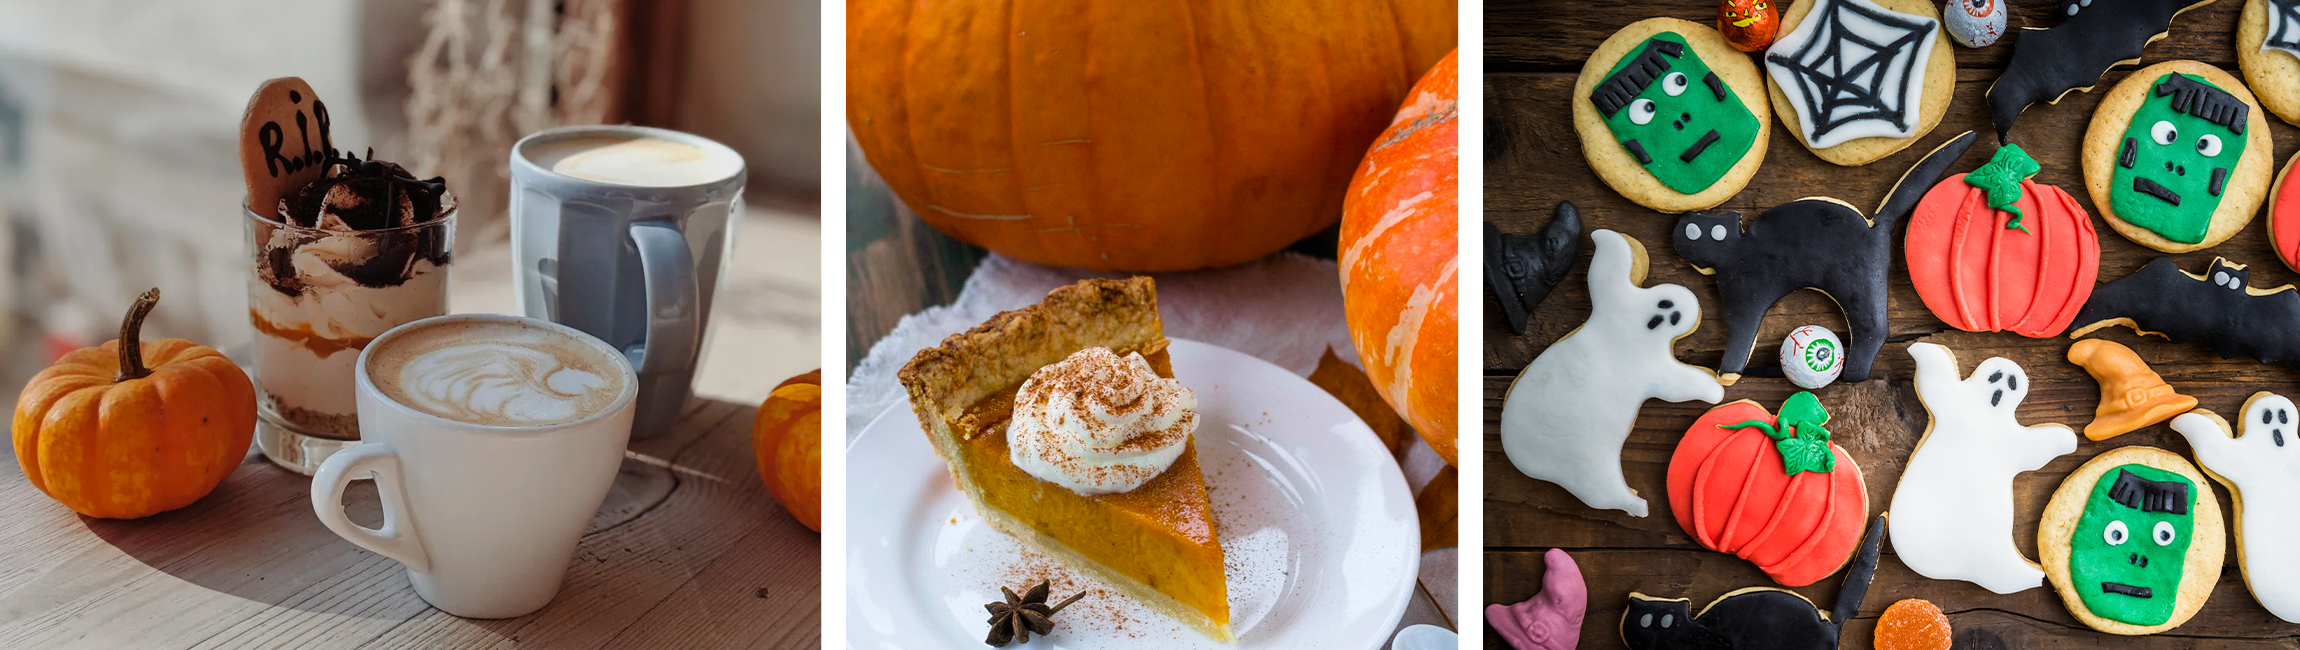 pumpkin spice toffee apple halloween fall autumn spooky treats tricks baking bakes cakes cookies pie coffee hot chocolate home house deserts